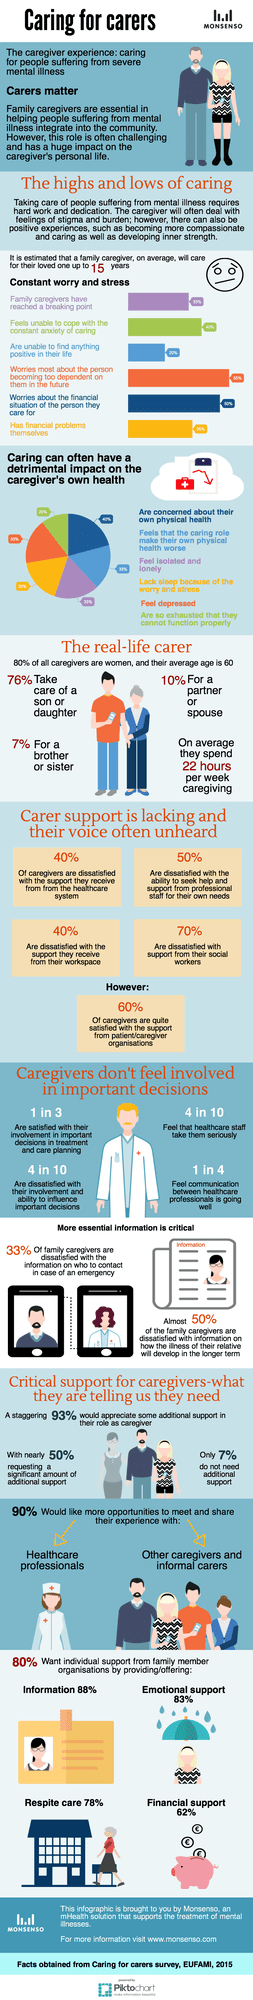 infographic of the family caregiver experience regards of dealing with family members with mental illness